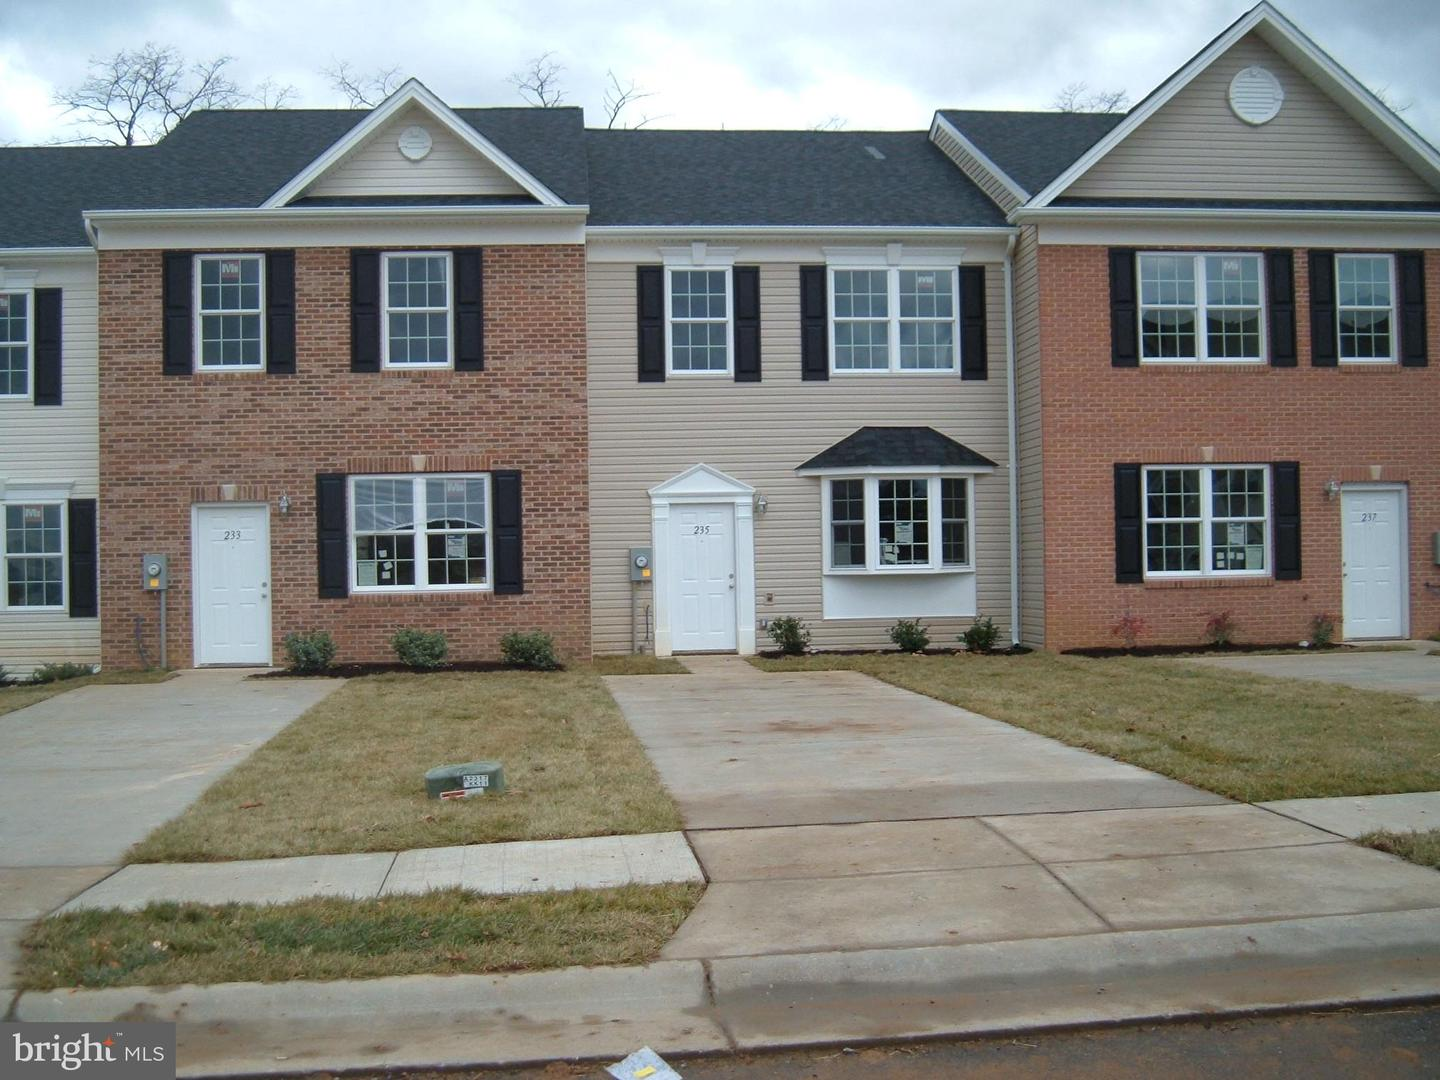 Property for Rent at Woodstock, Virginia 22664 United States